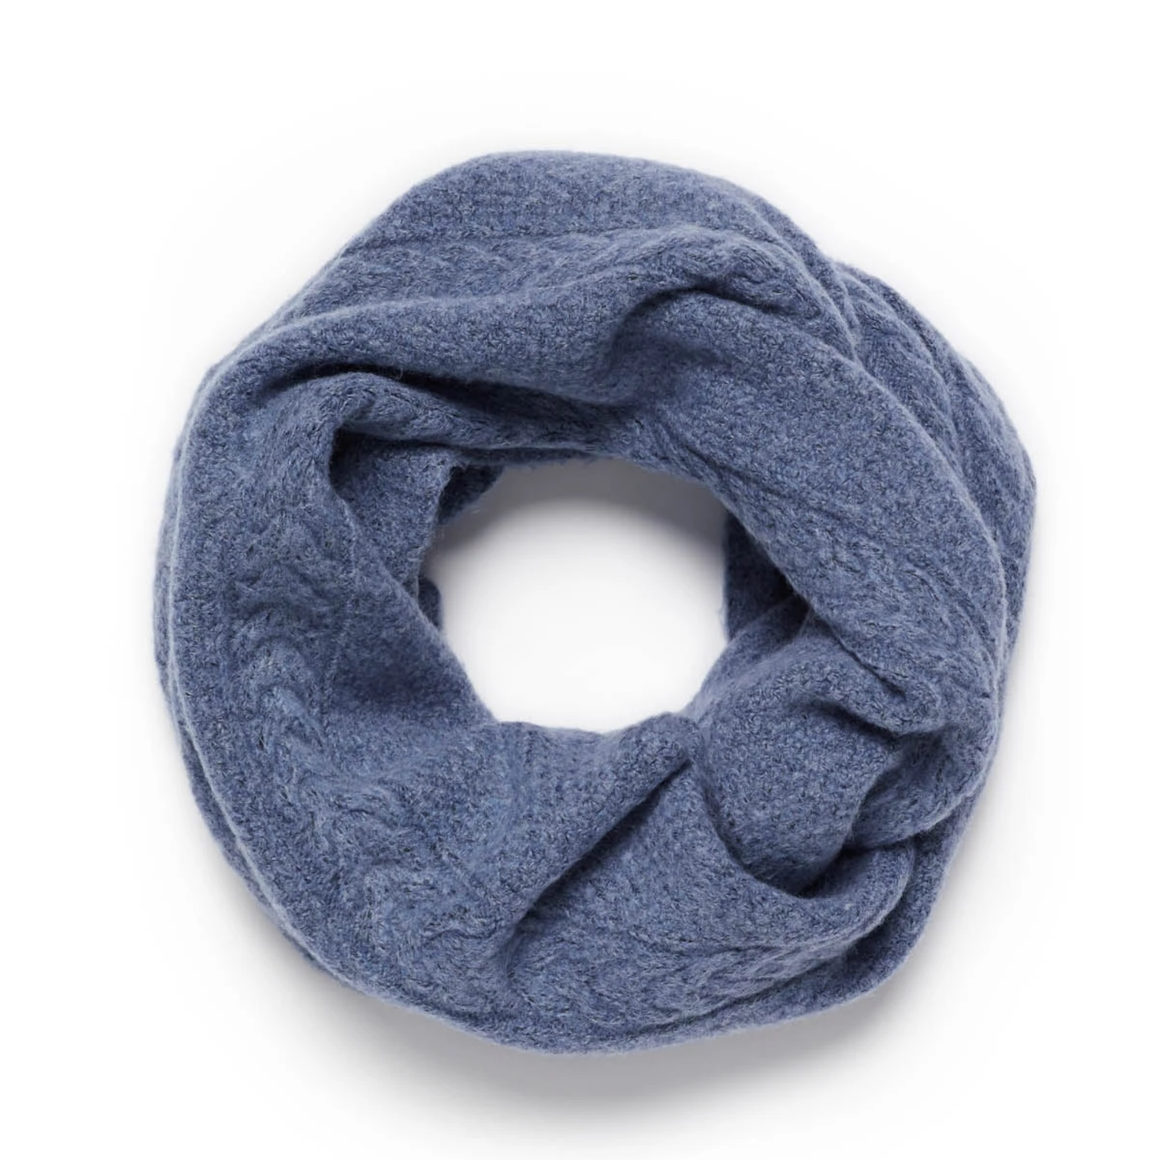 FLINDERS LOOP SCARF - DENIM